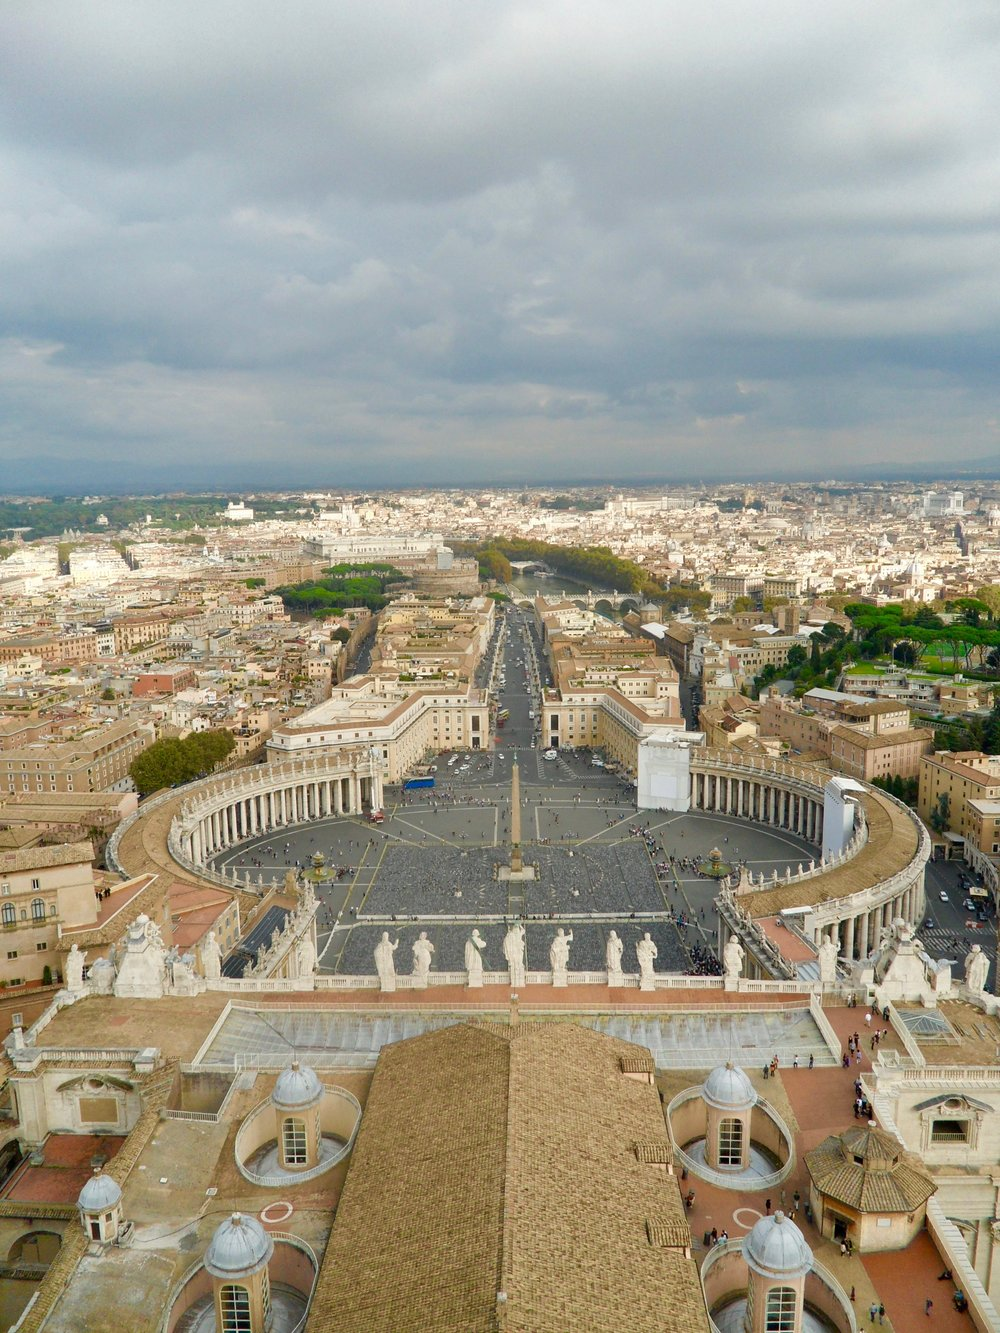 The view from the top of the Dome of St Peter's - worth the climb - and overlooking Castel St Angelo on the left at the end of the promenade